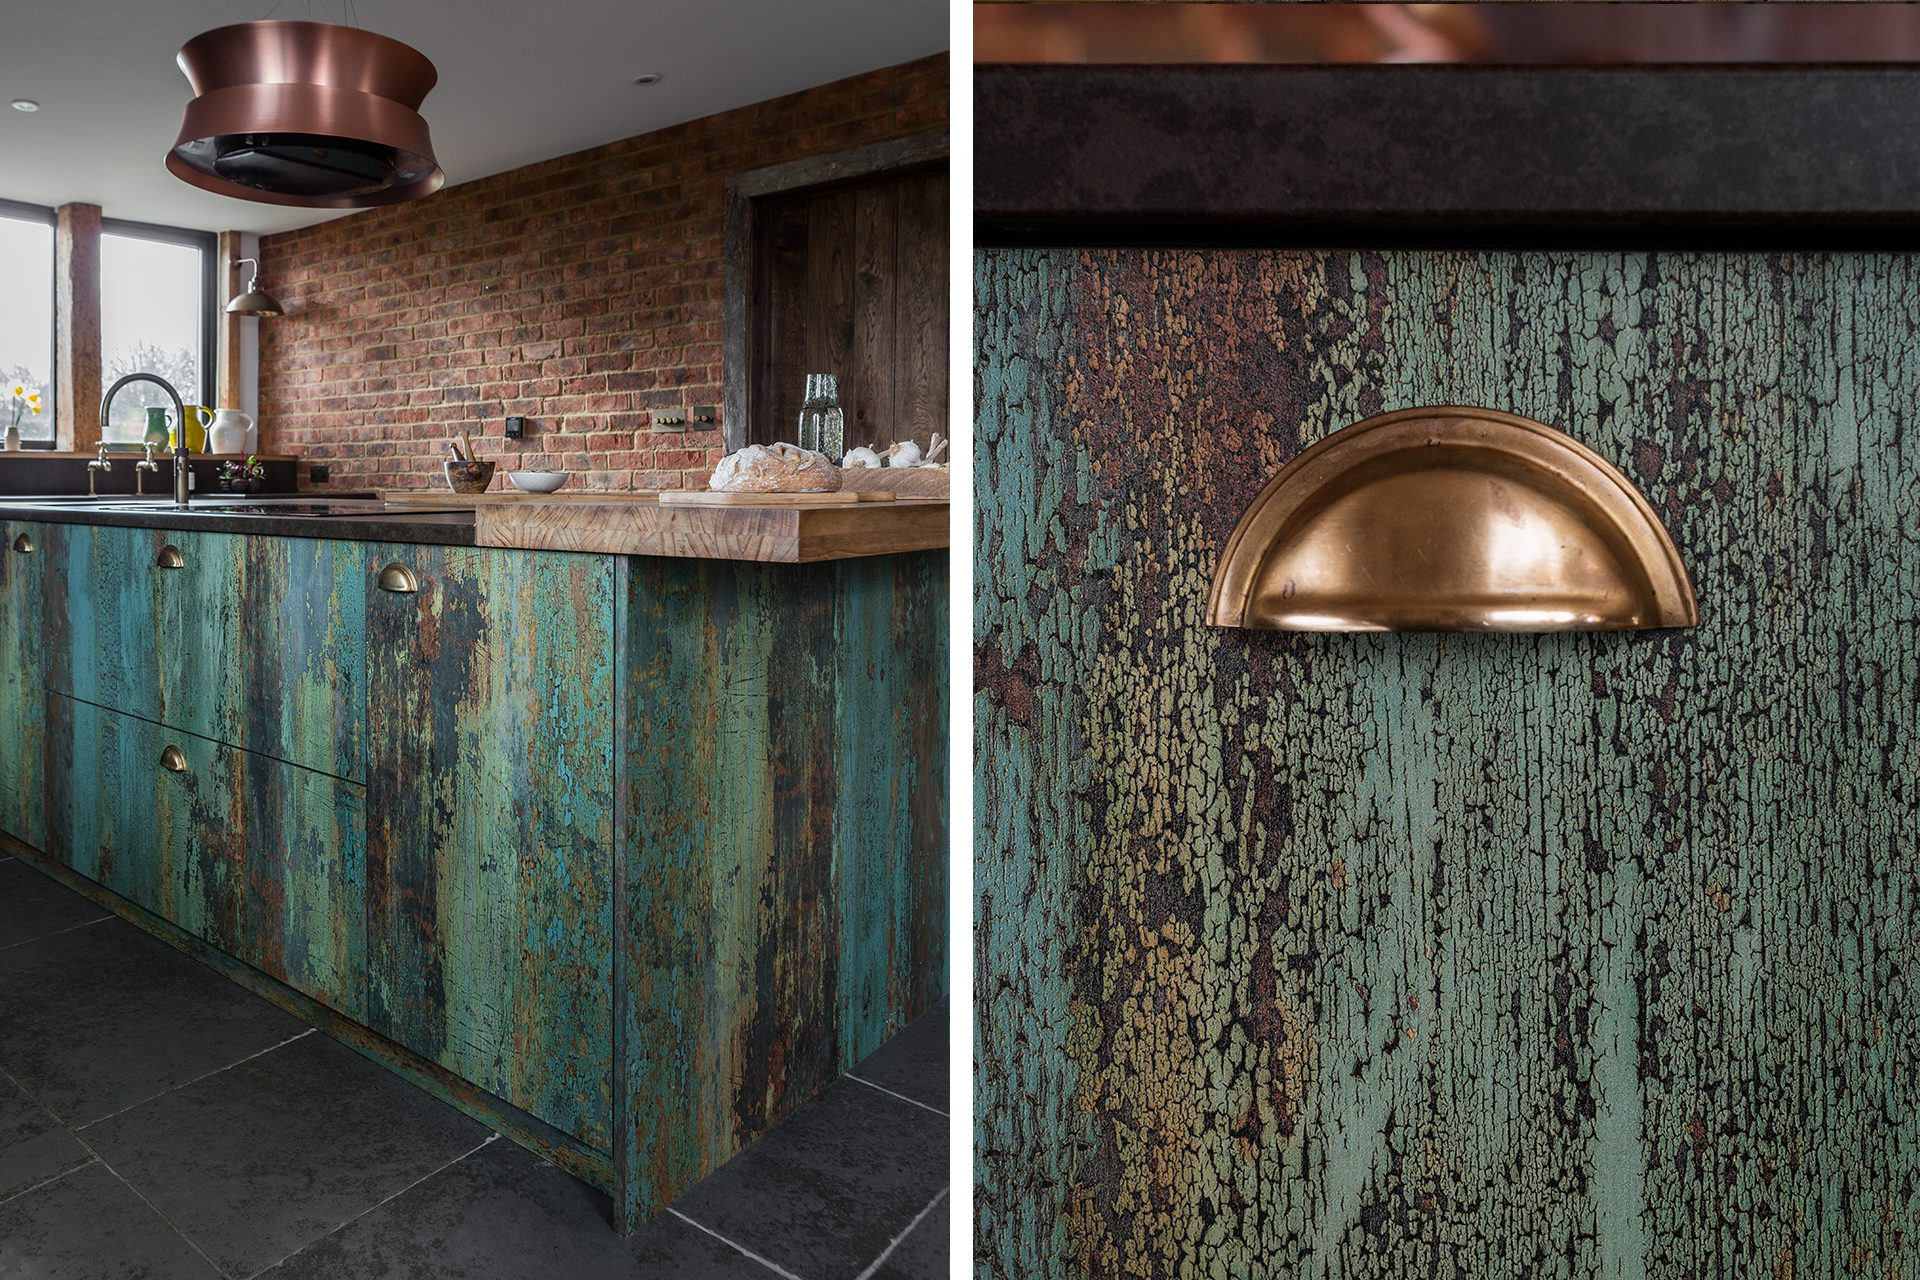 Rustic Country Kitchen with Wooden Green Textured Cabinets and Bronze Cup Handles